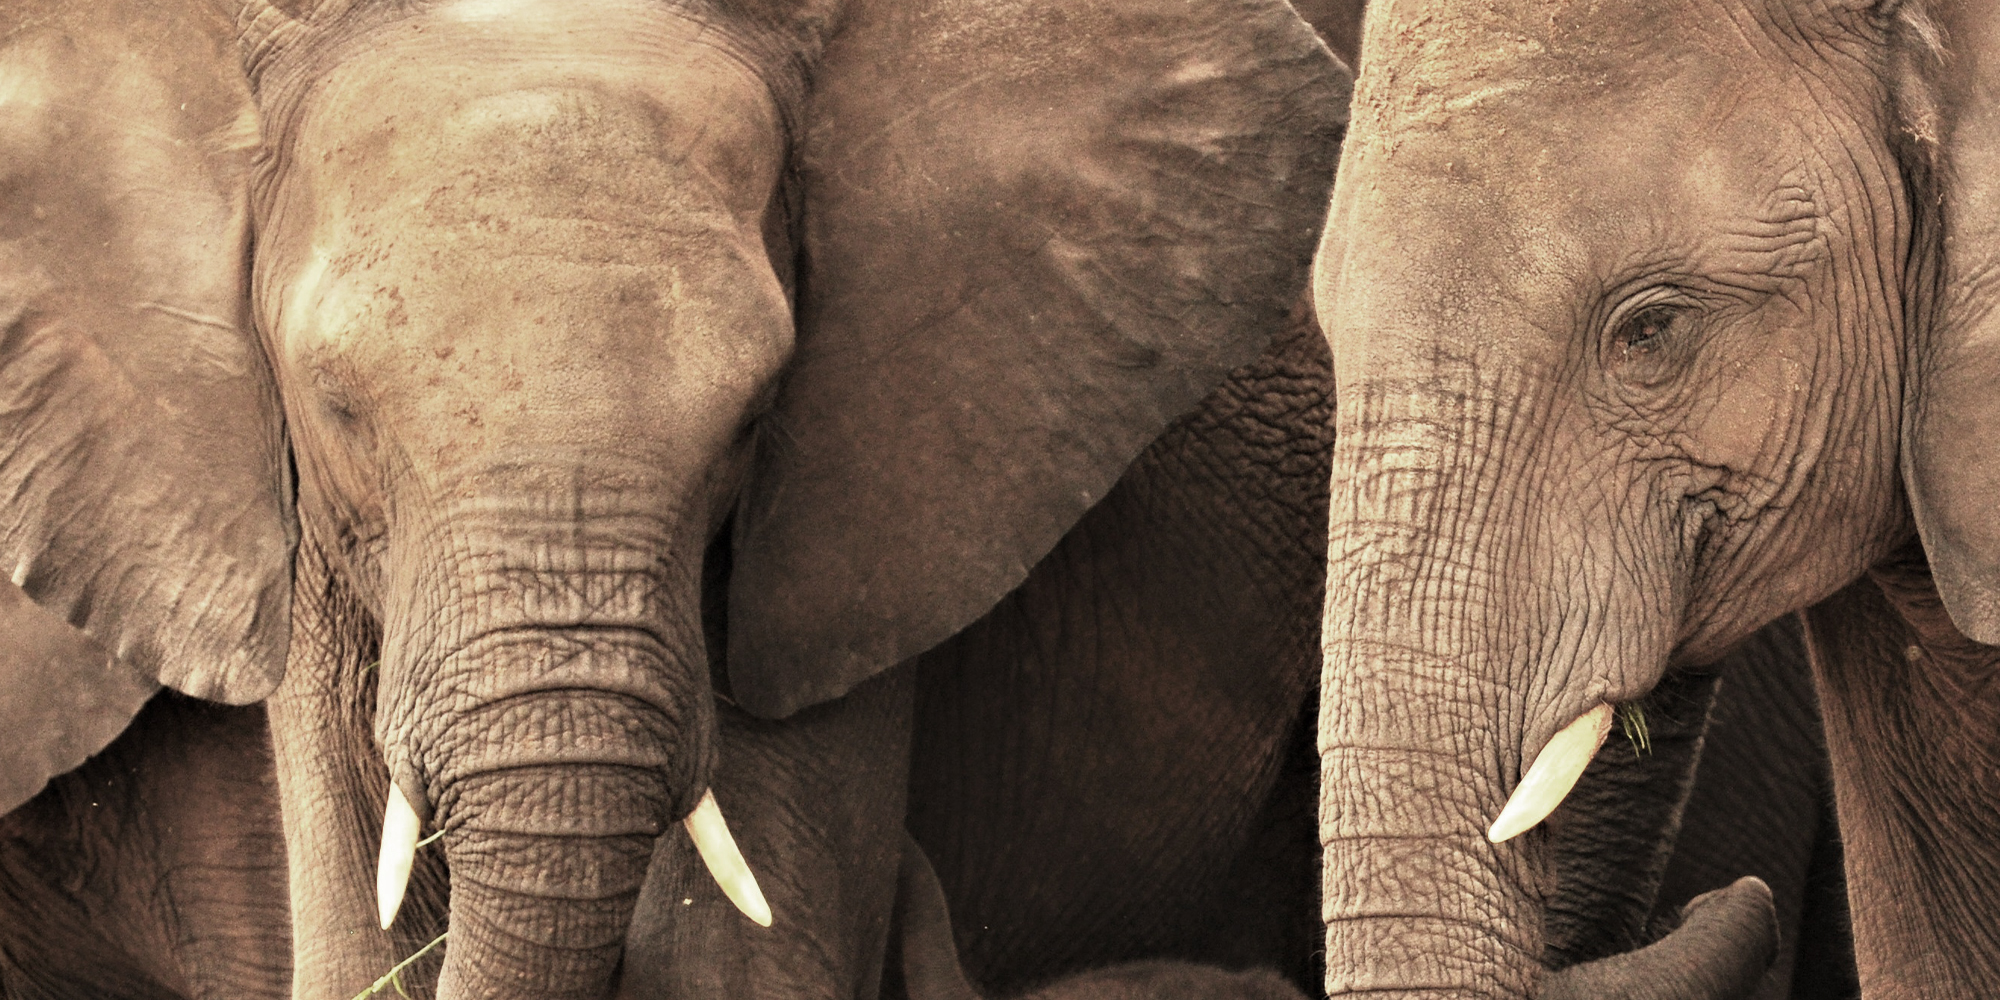 LETTER TO THE EDITOR: Elephants are not human — they are animals, and all animal populations need to be managed